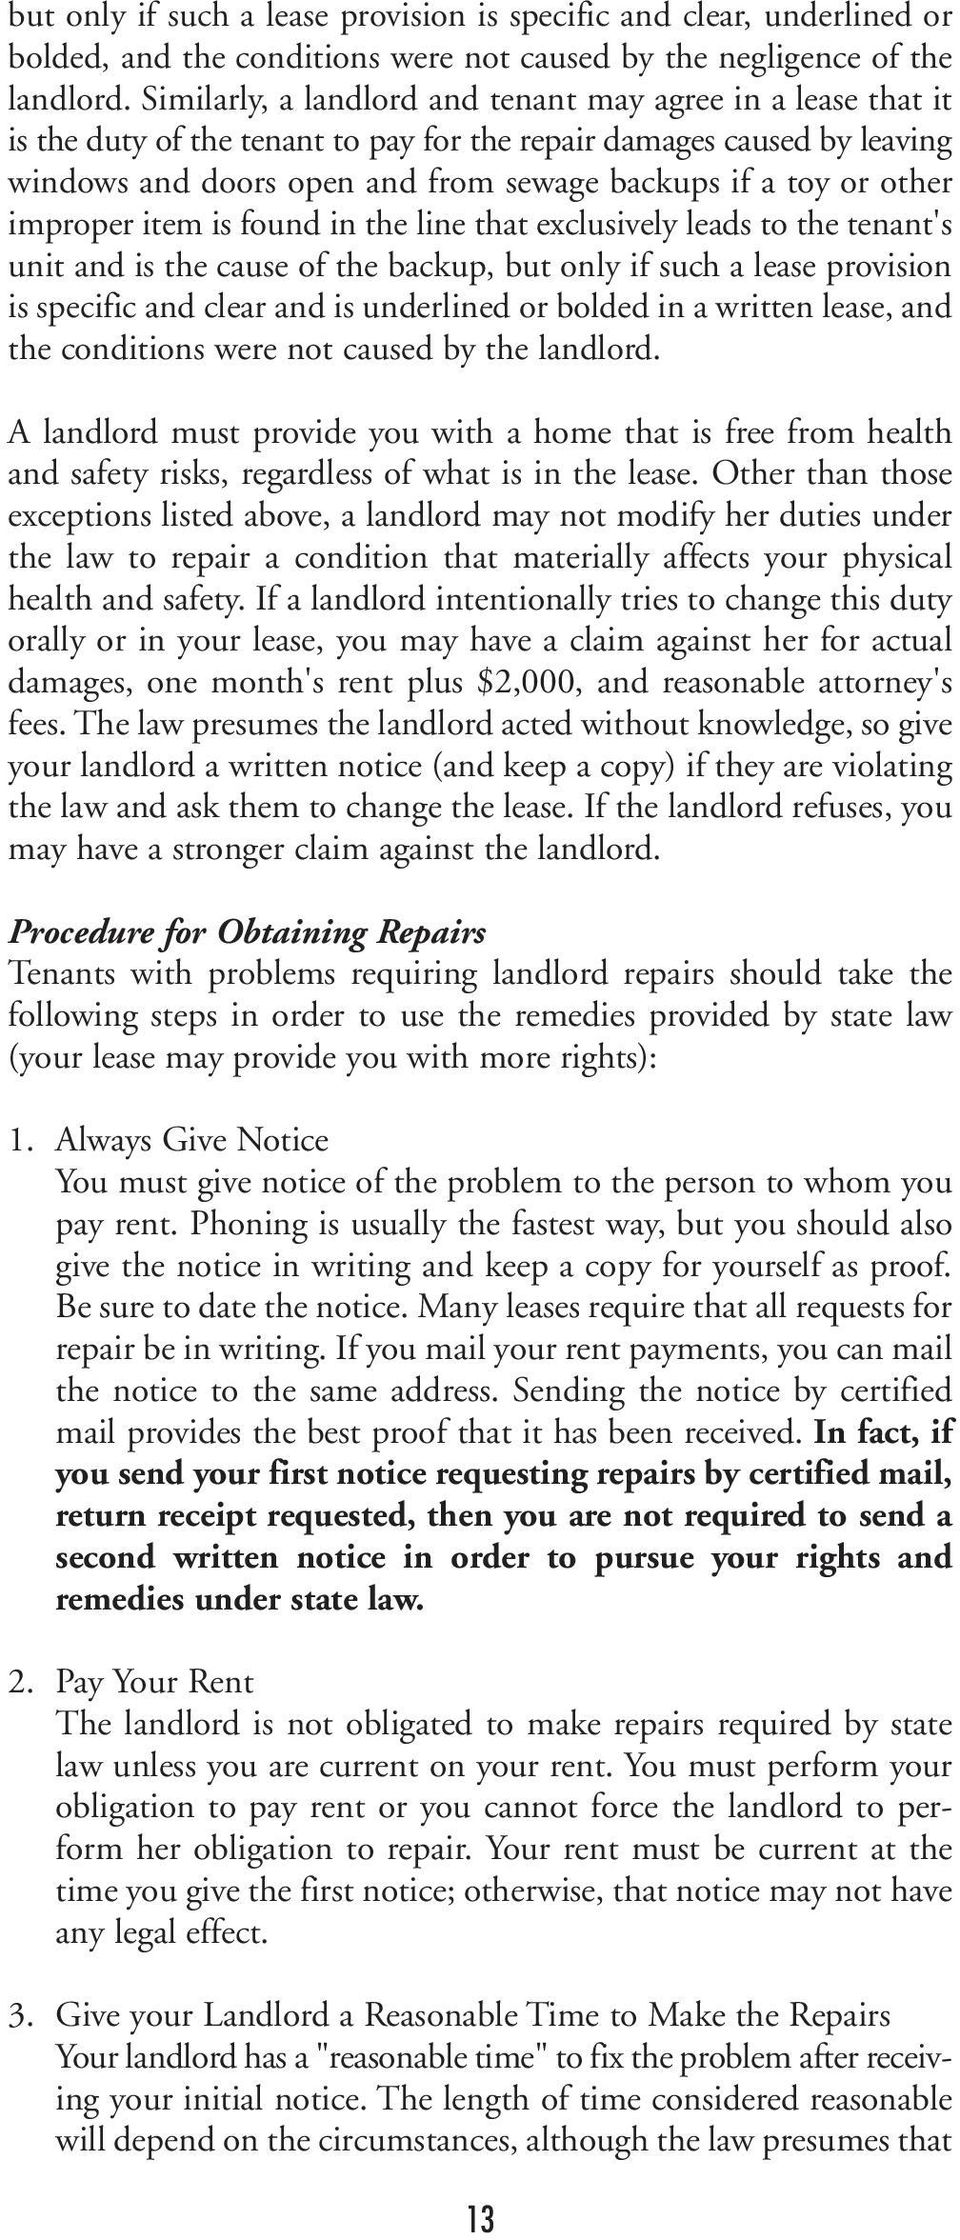 other improper item is found in the line that exclusively leads to the tenant's unit and is the cause of the backup, but only if such a lease provision is specific and clear and is underlined or